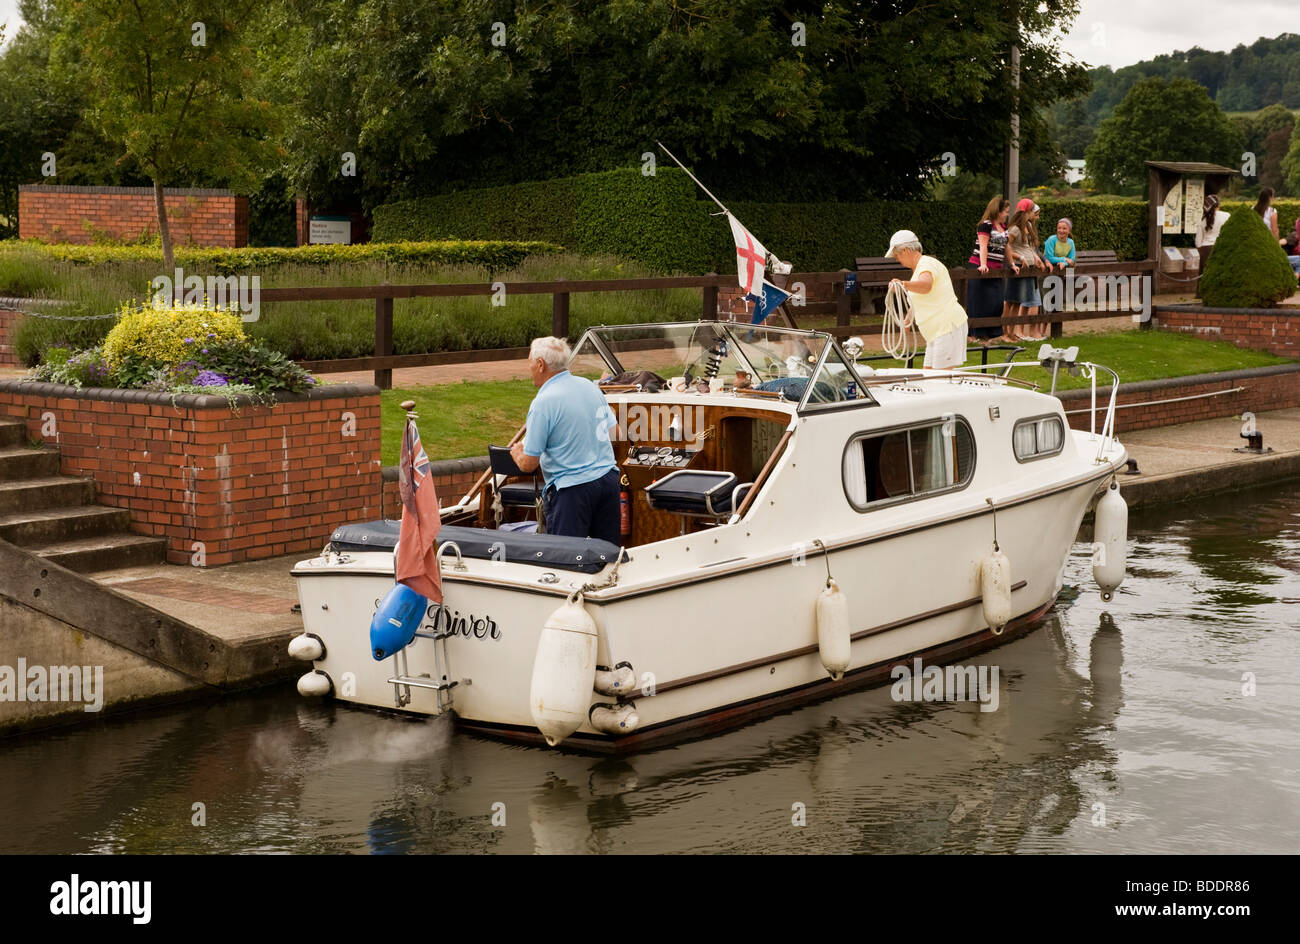 Pleasure craft moored at Hambleden Lock, Mill End, Hambleden, Buckinghamshire UK - Stock Image